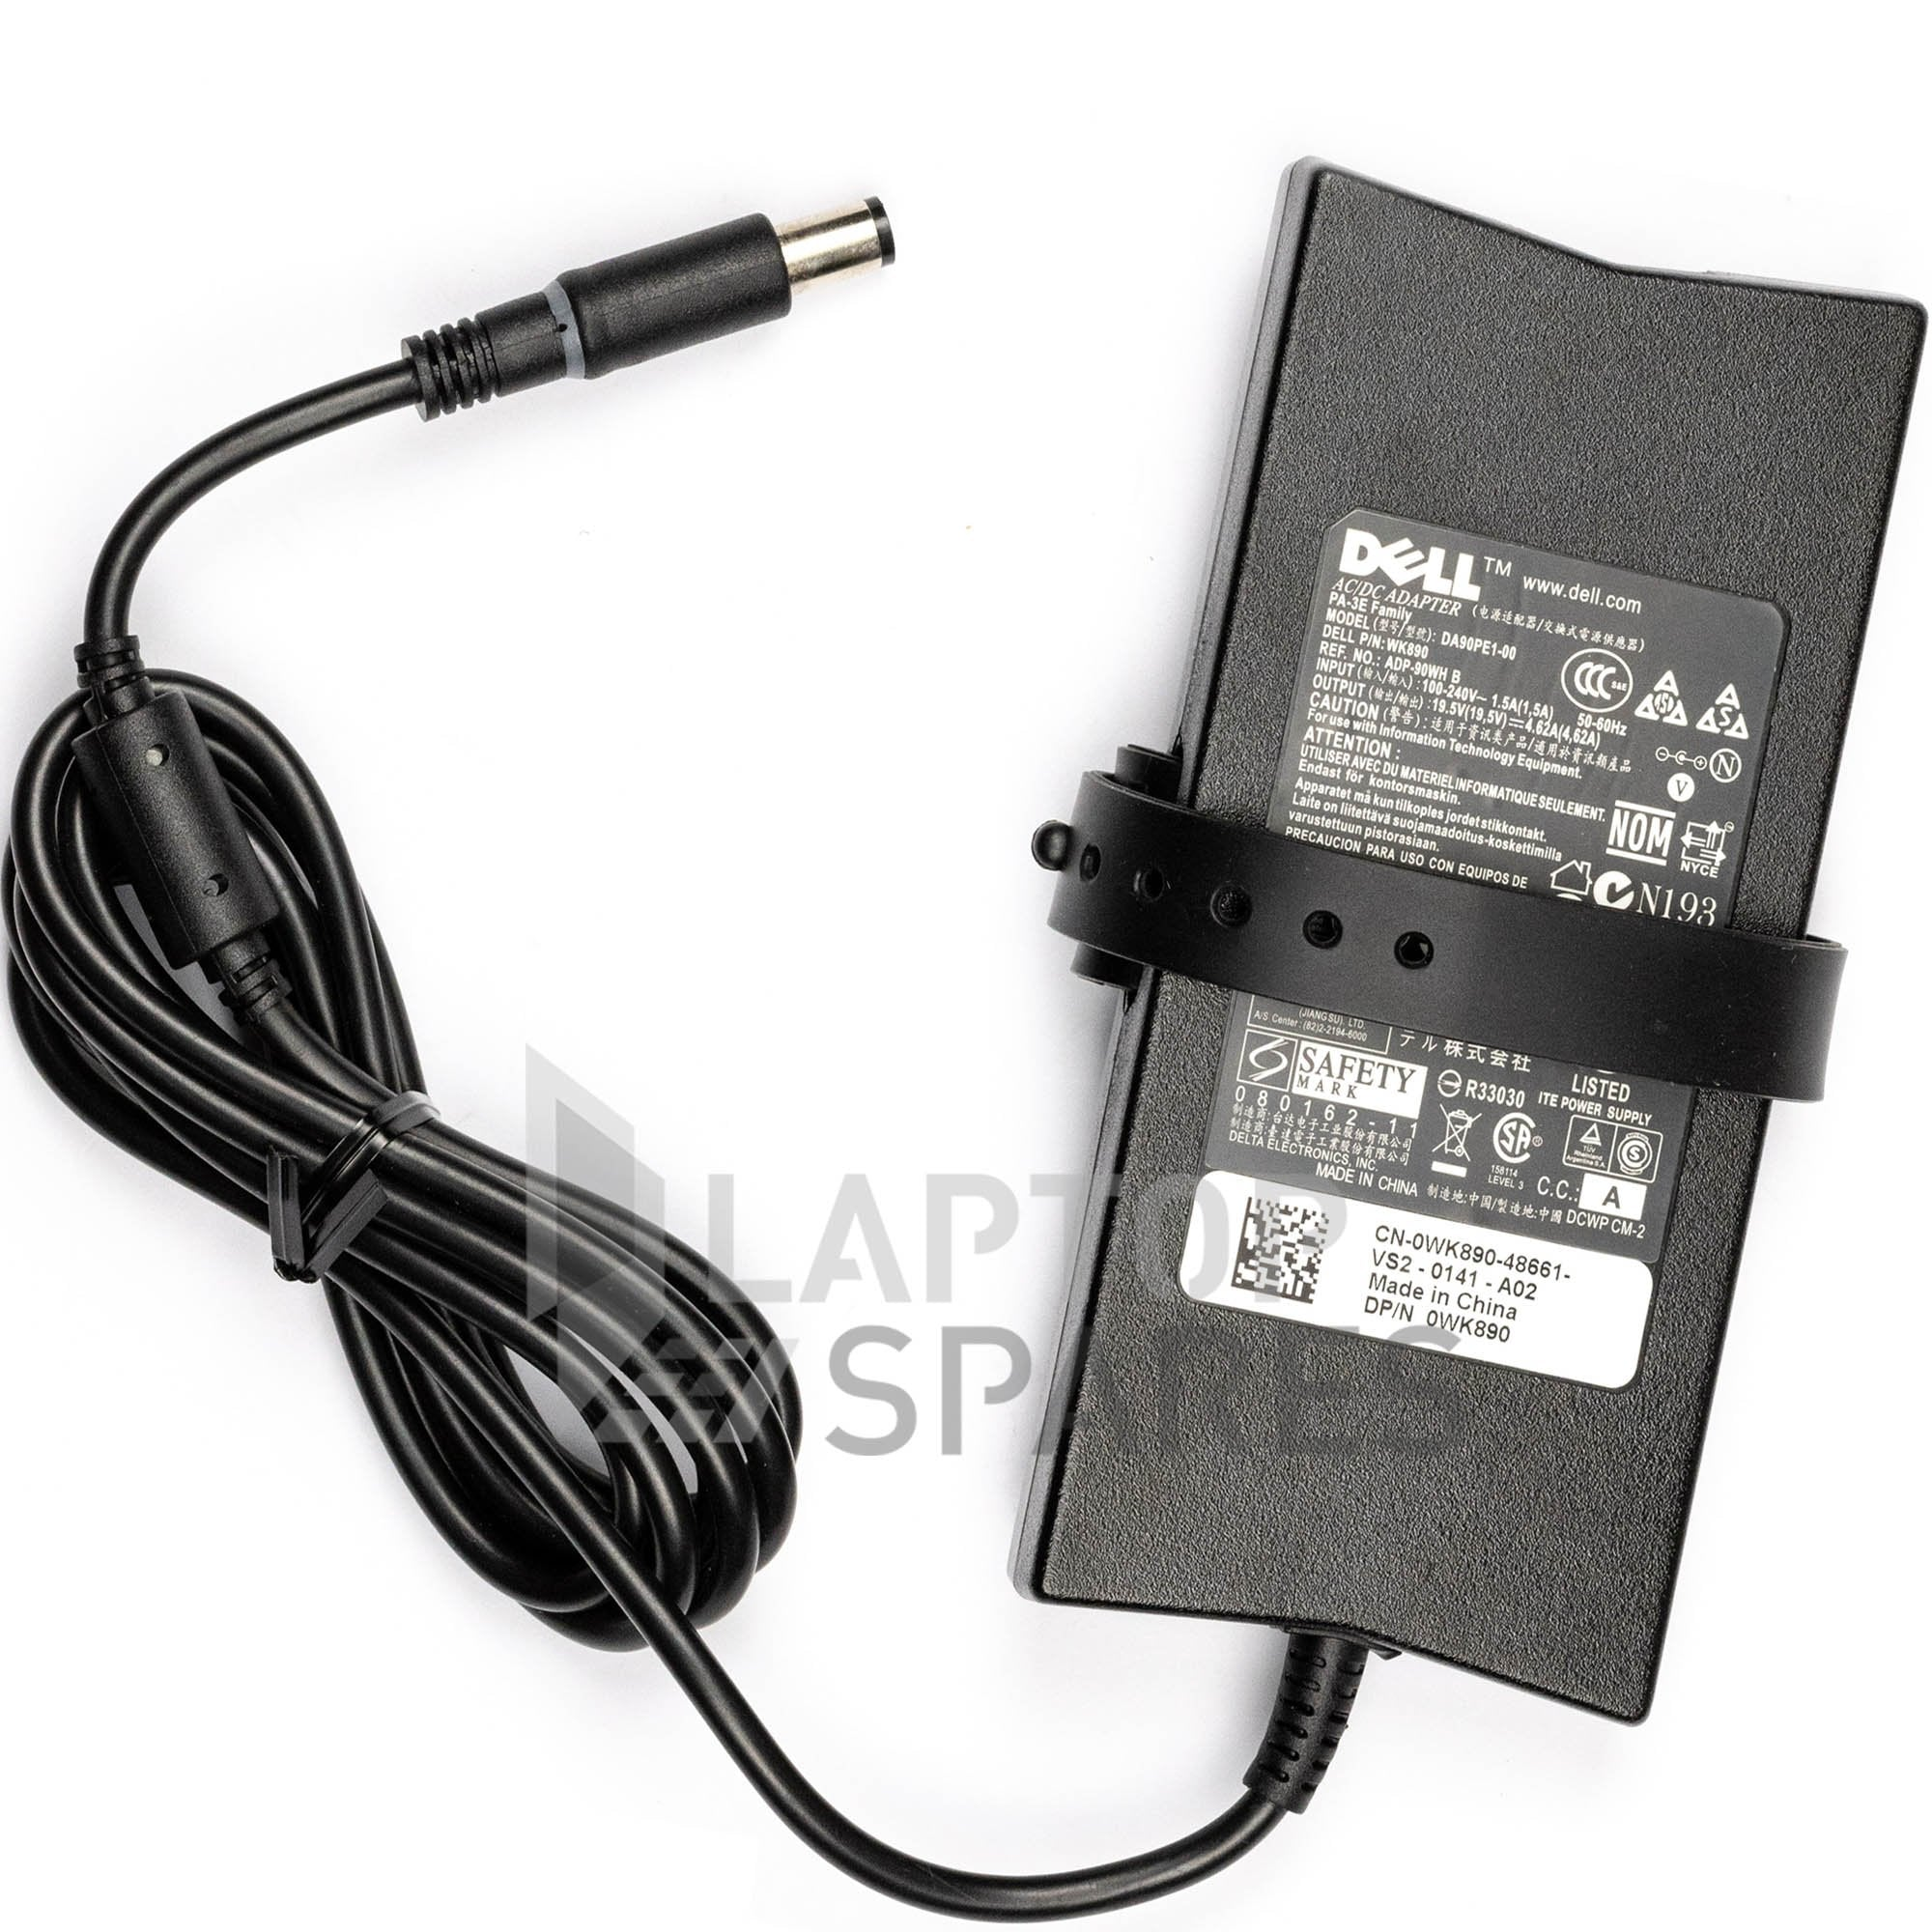 Dell Inspiron 9200 9300 9300s Laptop Slim AC Adapter Charger